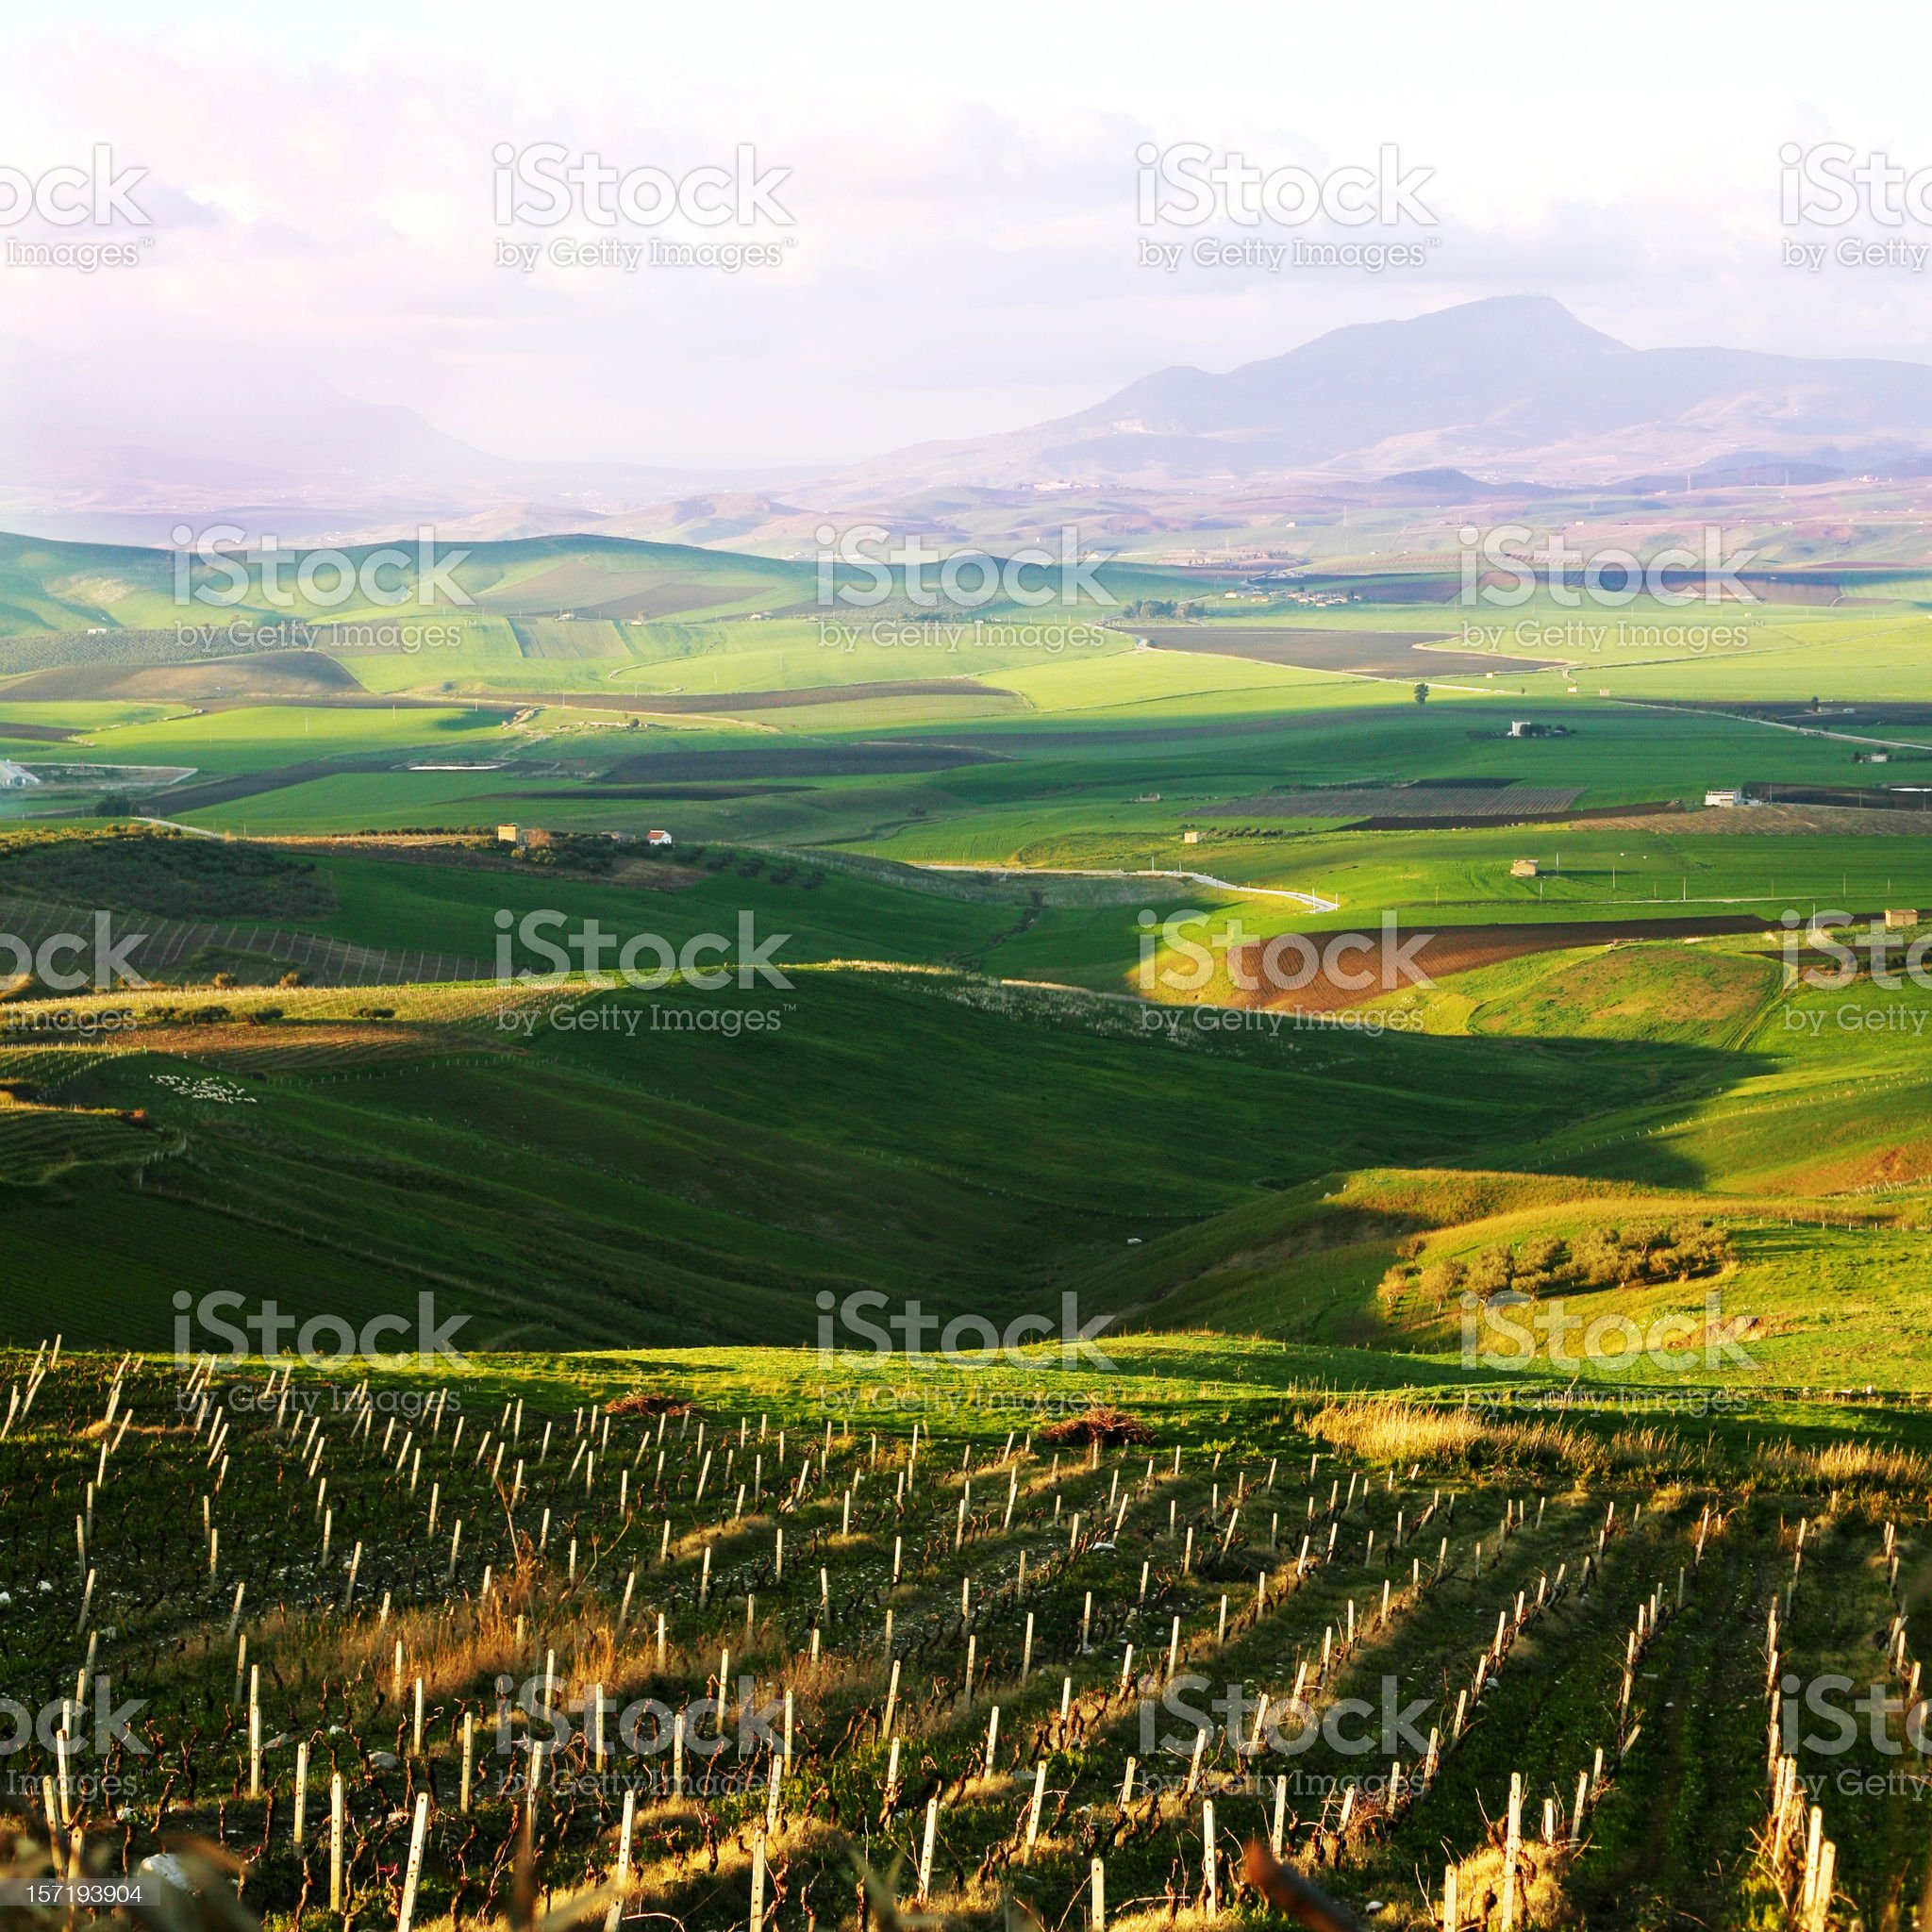 fields in evening light royalty-free stock photo